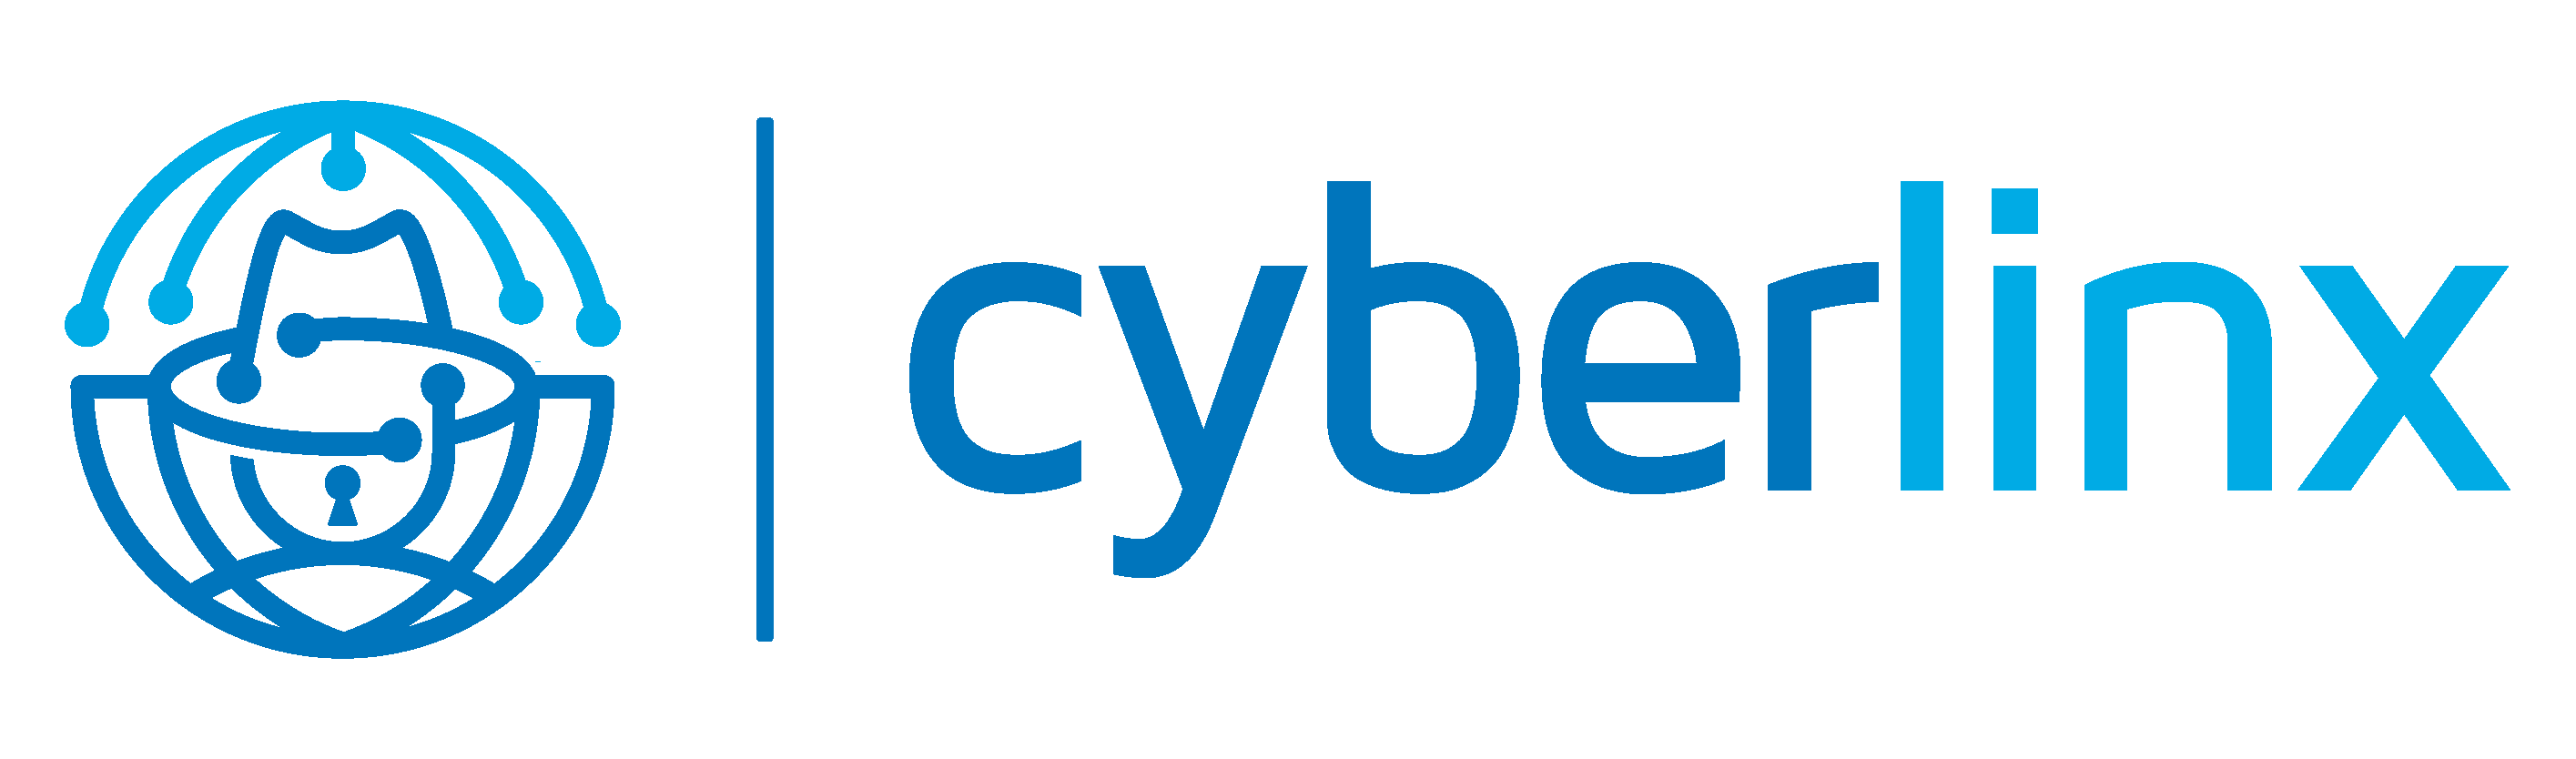 cyberlinx-logo